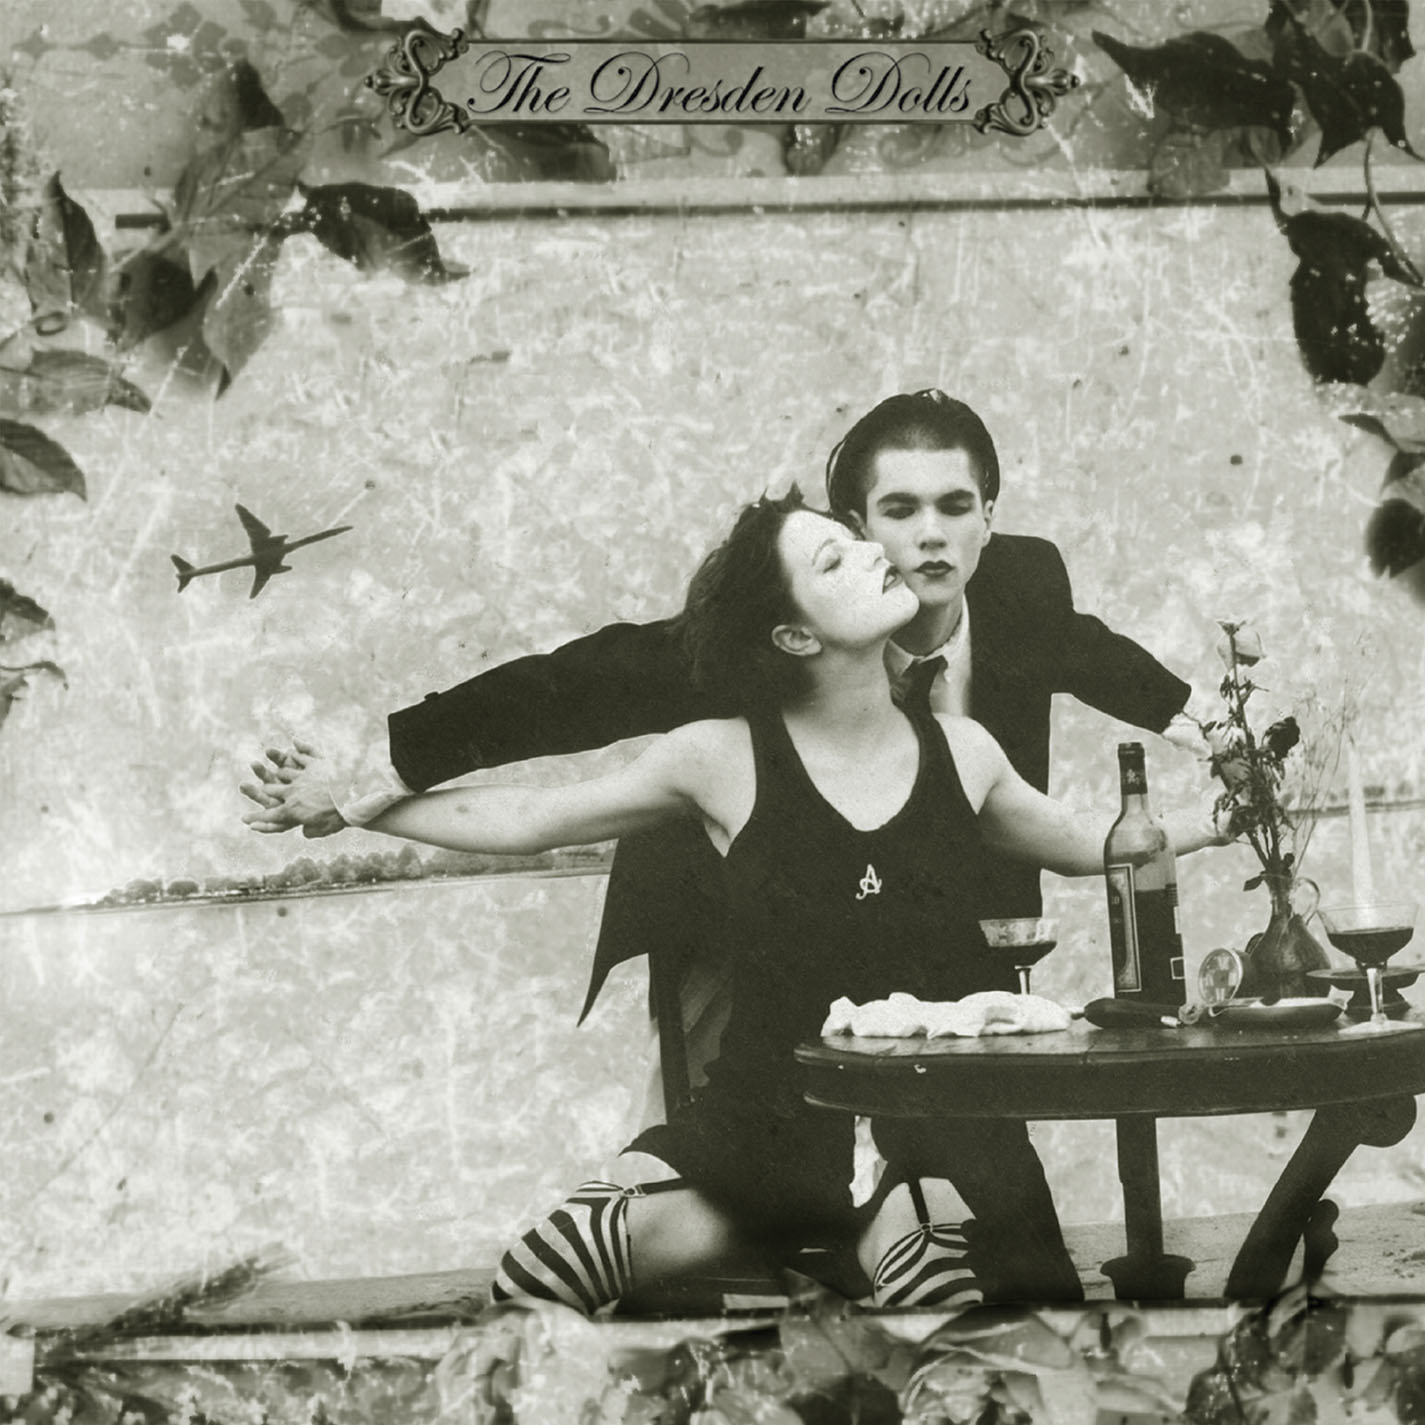 The Dresden Dolls - The Dresden Dolls